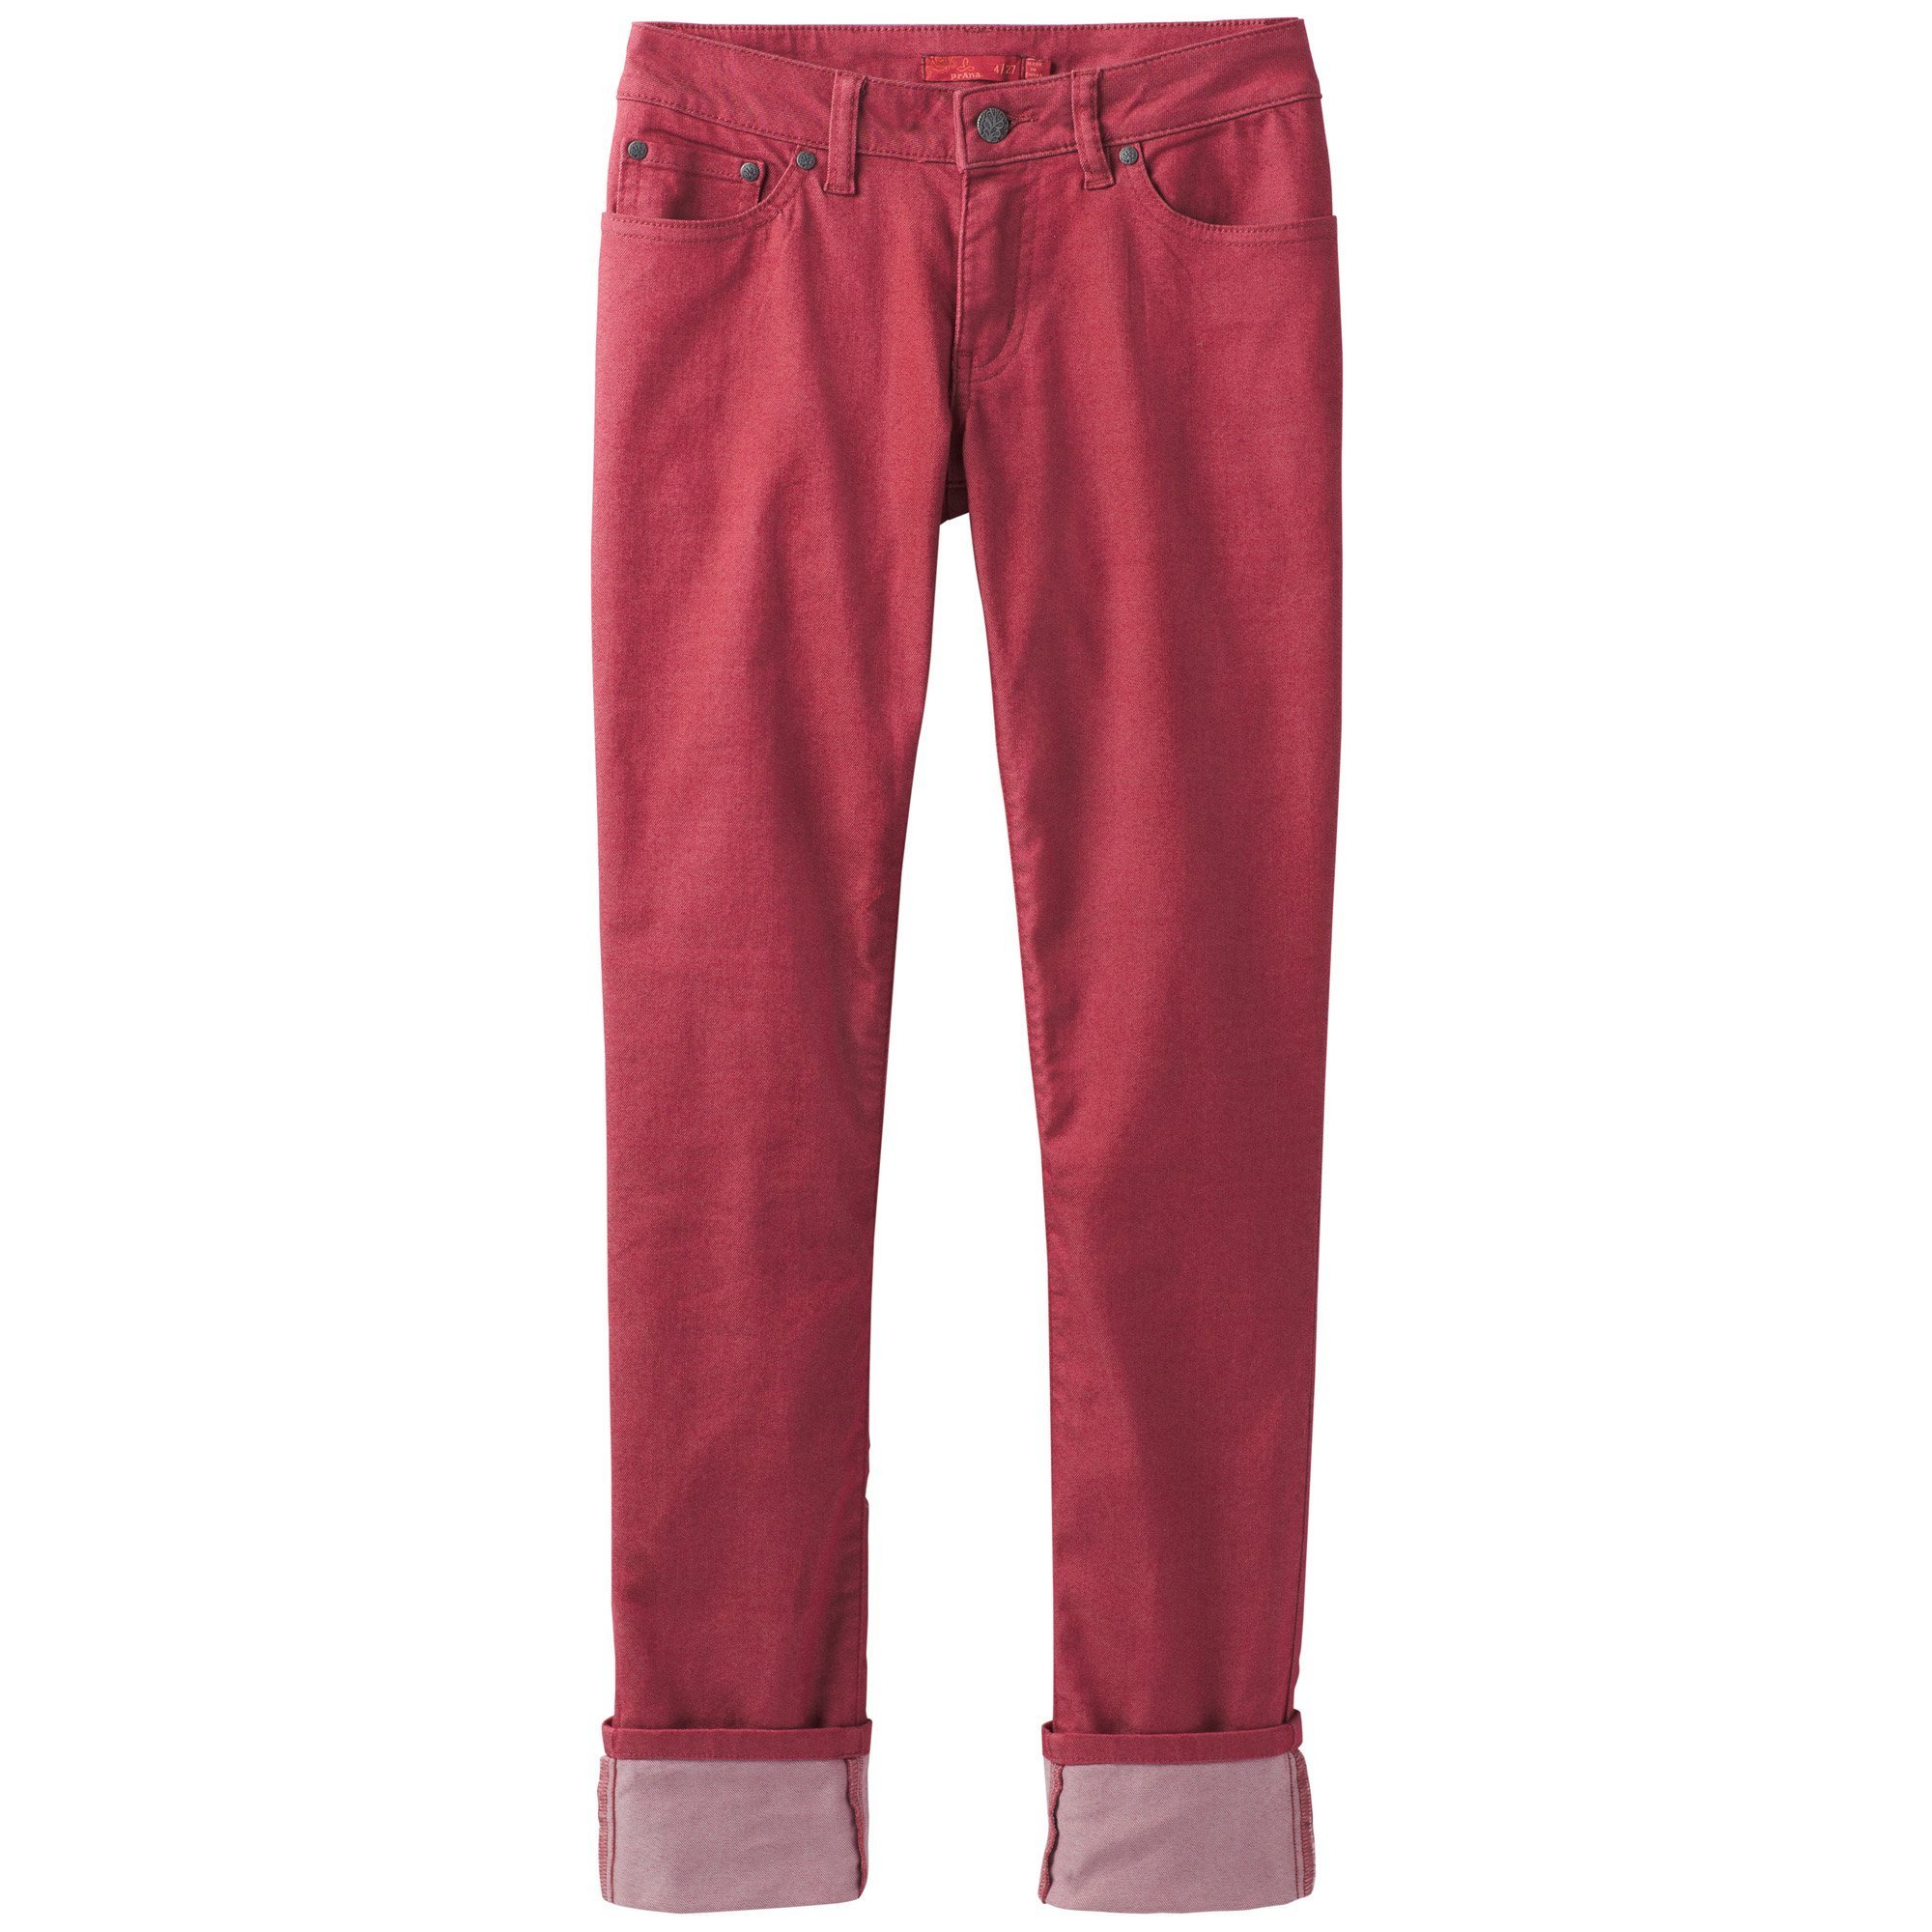 prAna Kara Jean Pants, Crushed Cran, Size 10 by prAna